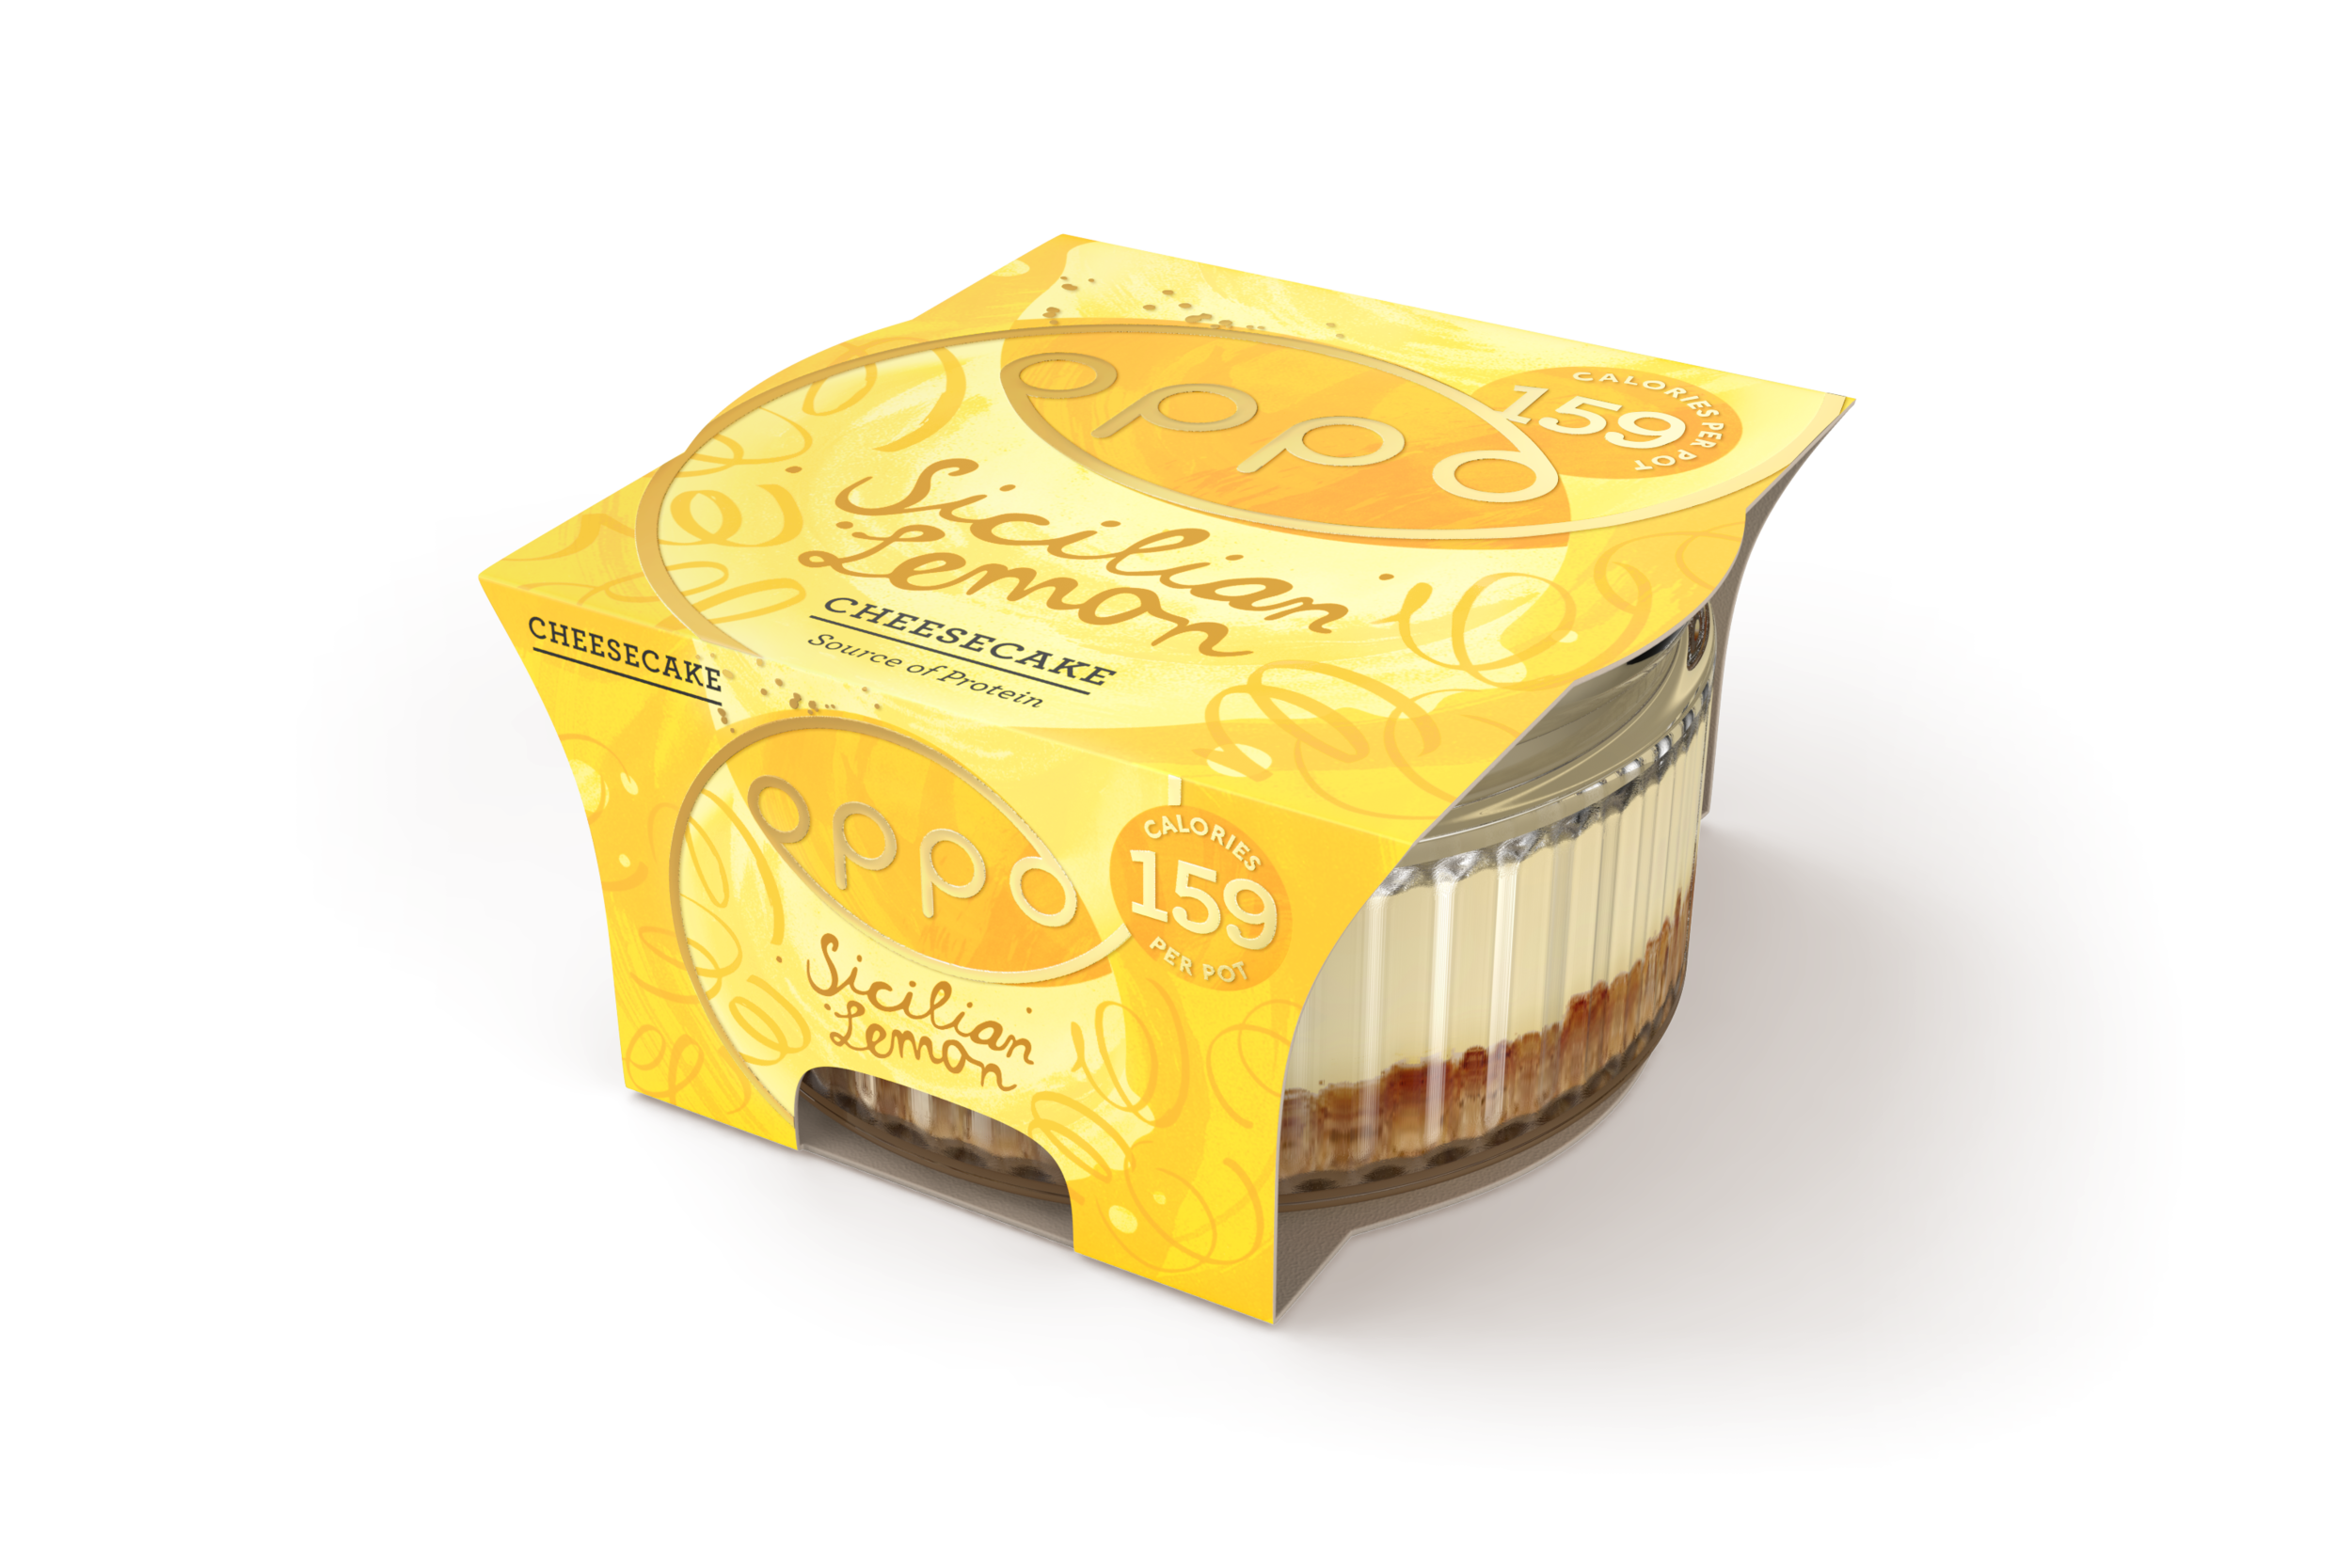 Oppo Lemon Cheesecake.png